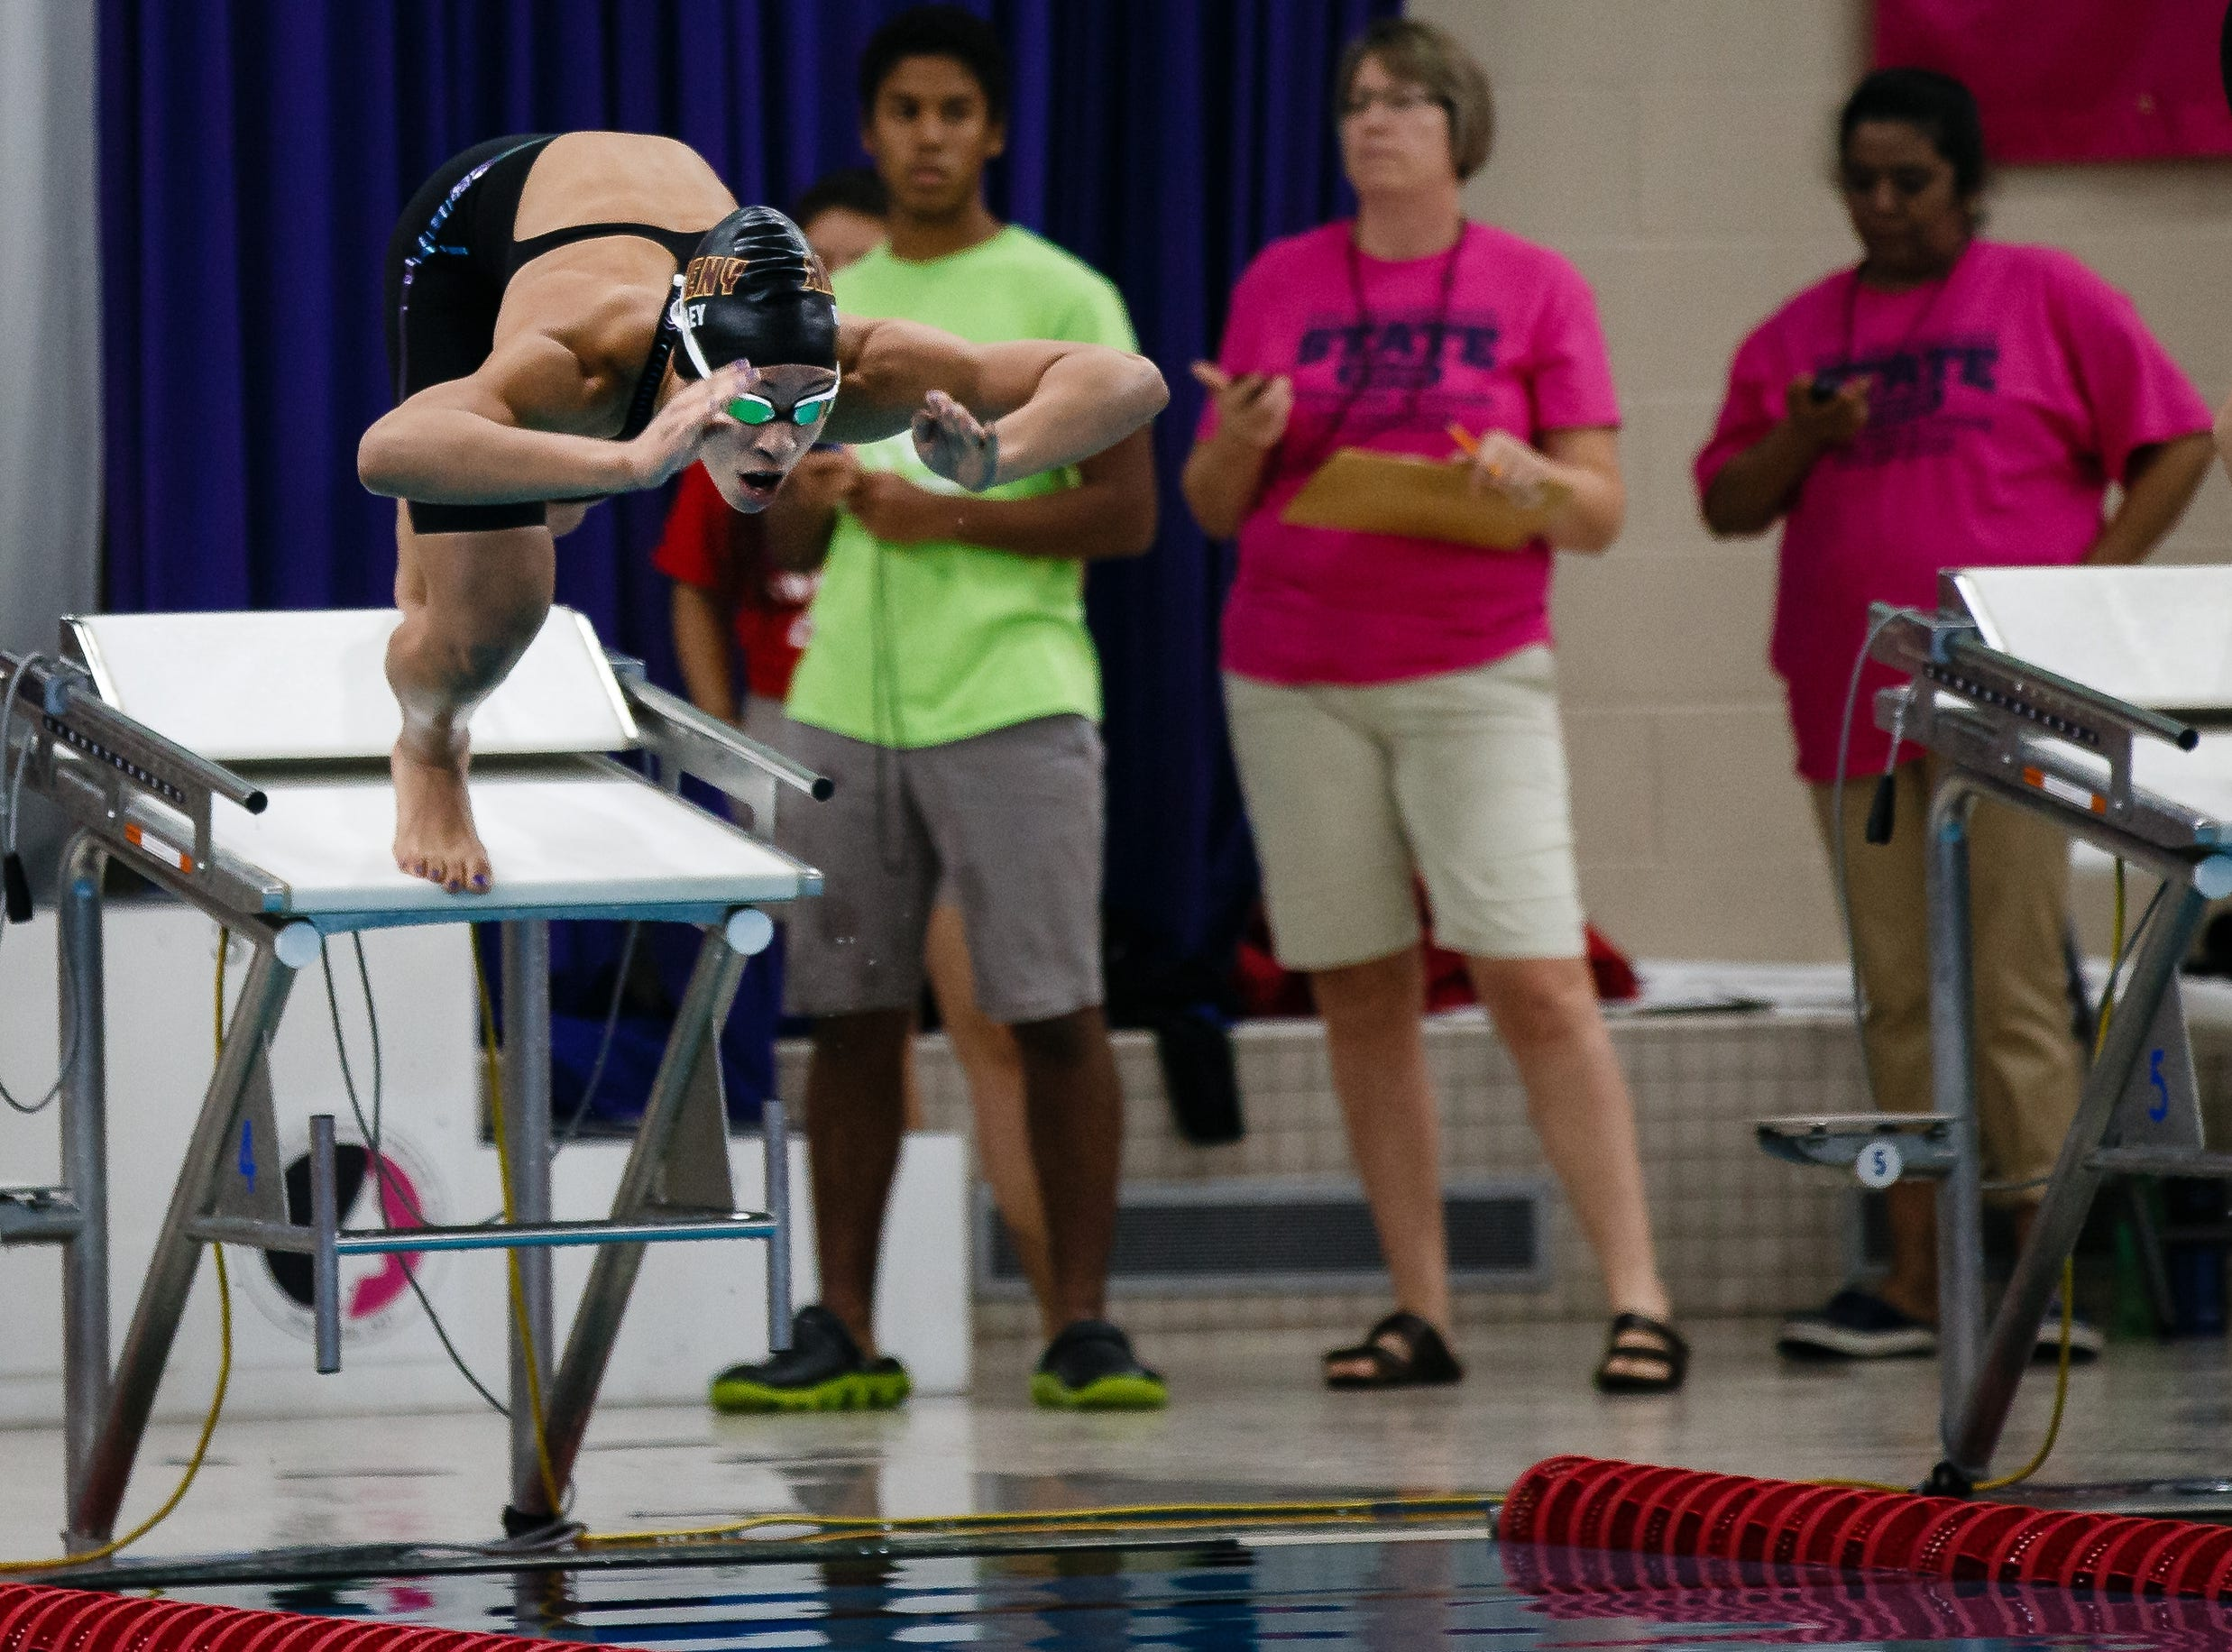 Jasmine Rumley from Ankeny competes in the 50 yard freestyle at the Iowa girls state swimming meet on Saturday, Nov. 3, 2018, in Marshalltown.